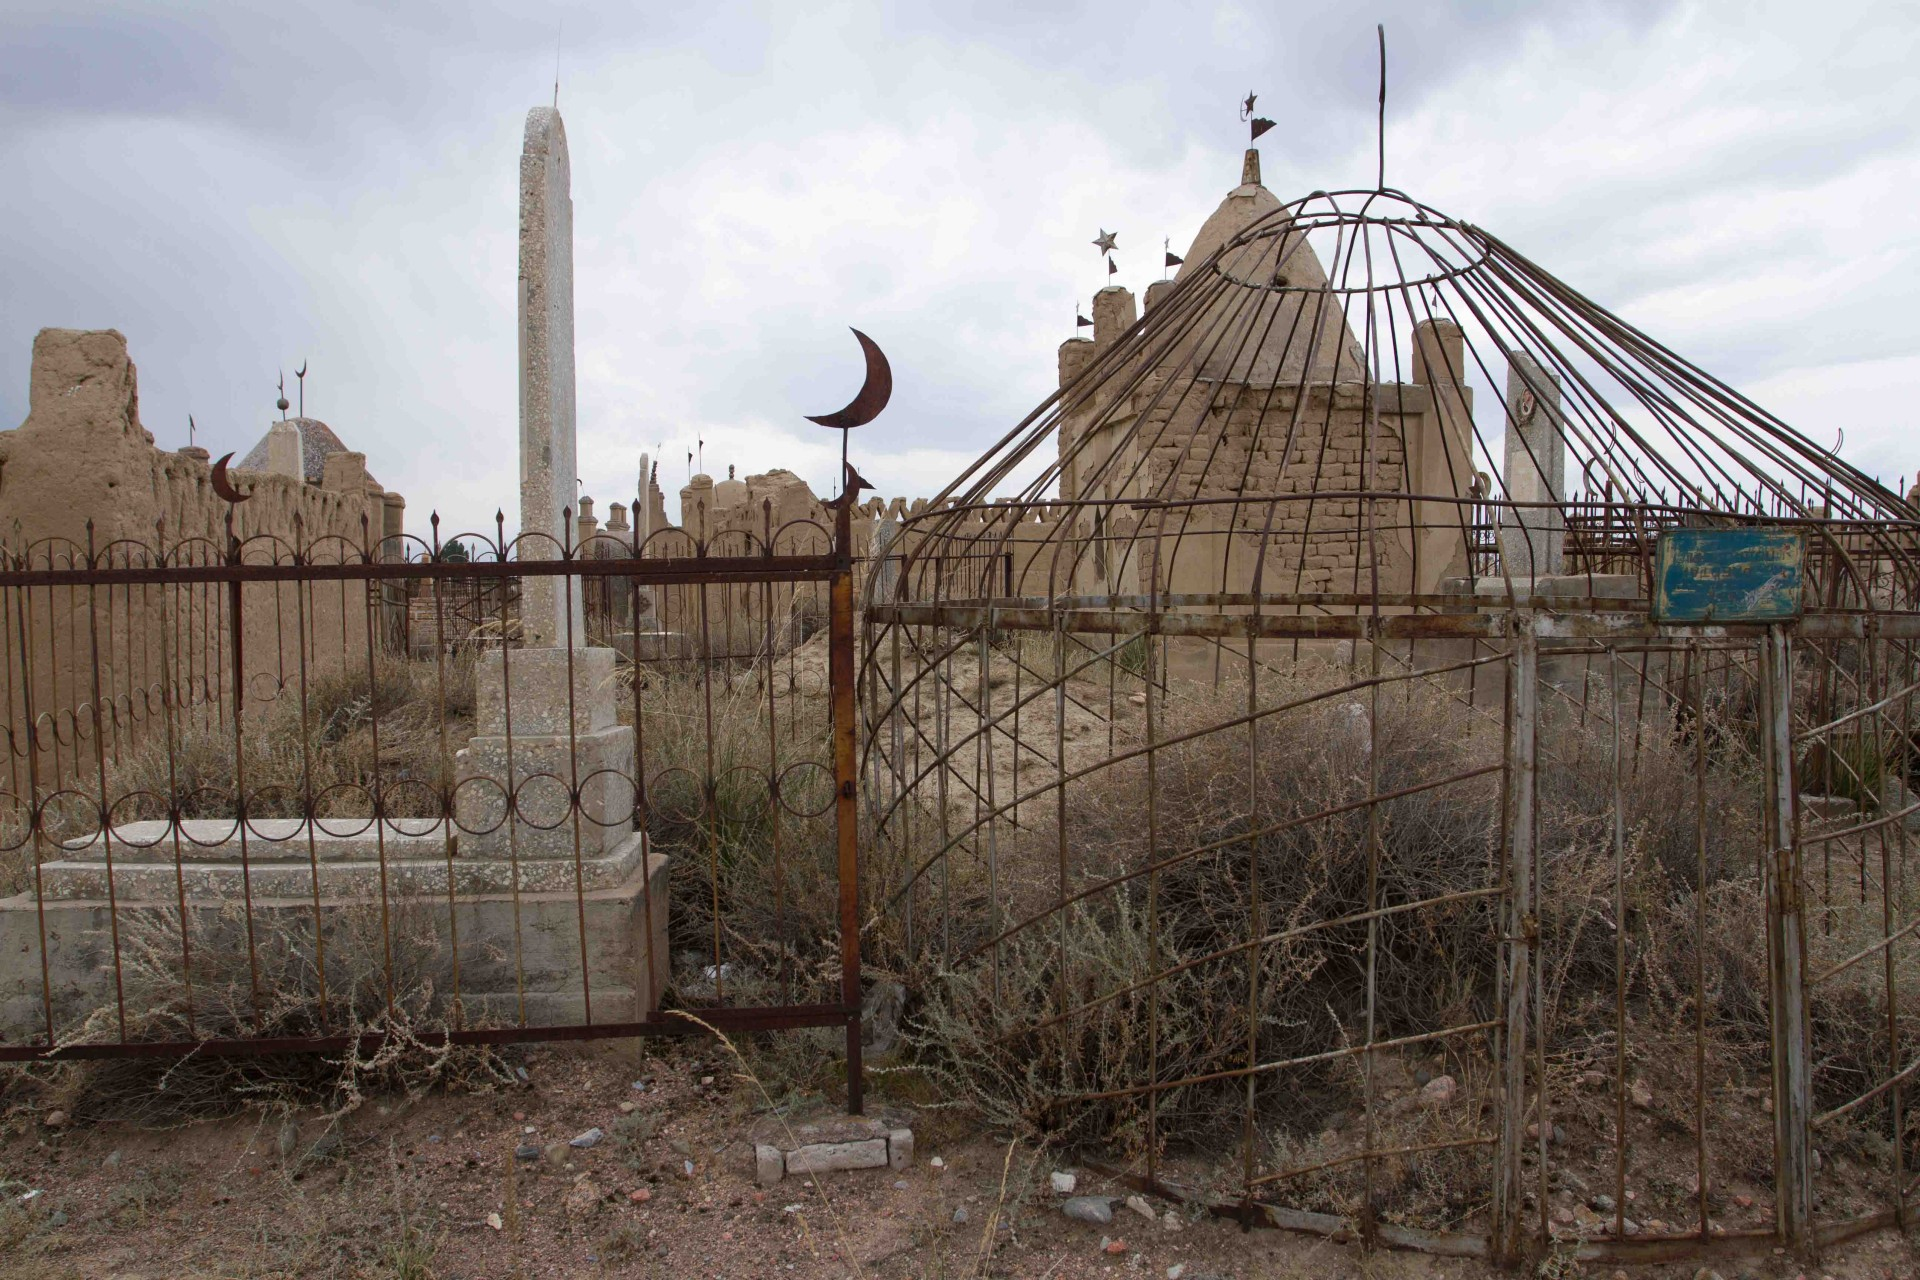 cemetery, Koshkor. some of the plots feature yurt shaped memorials that remind of giant bird cages.